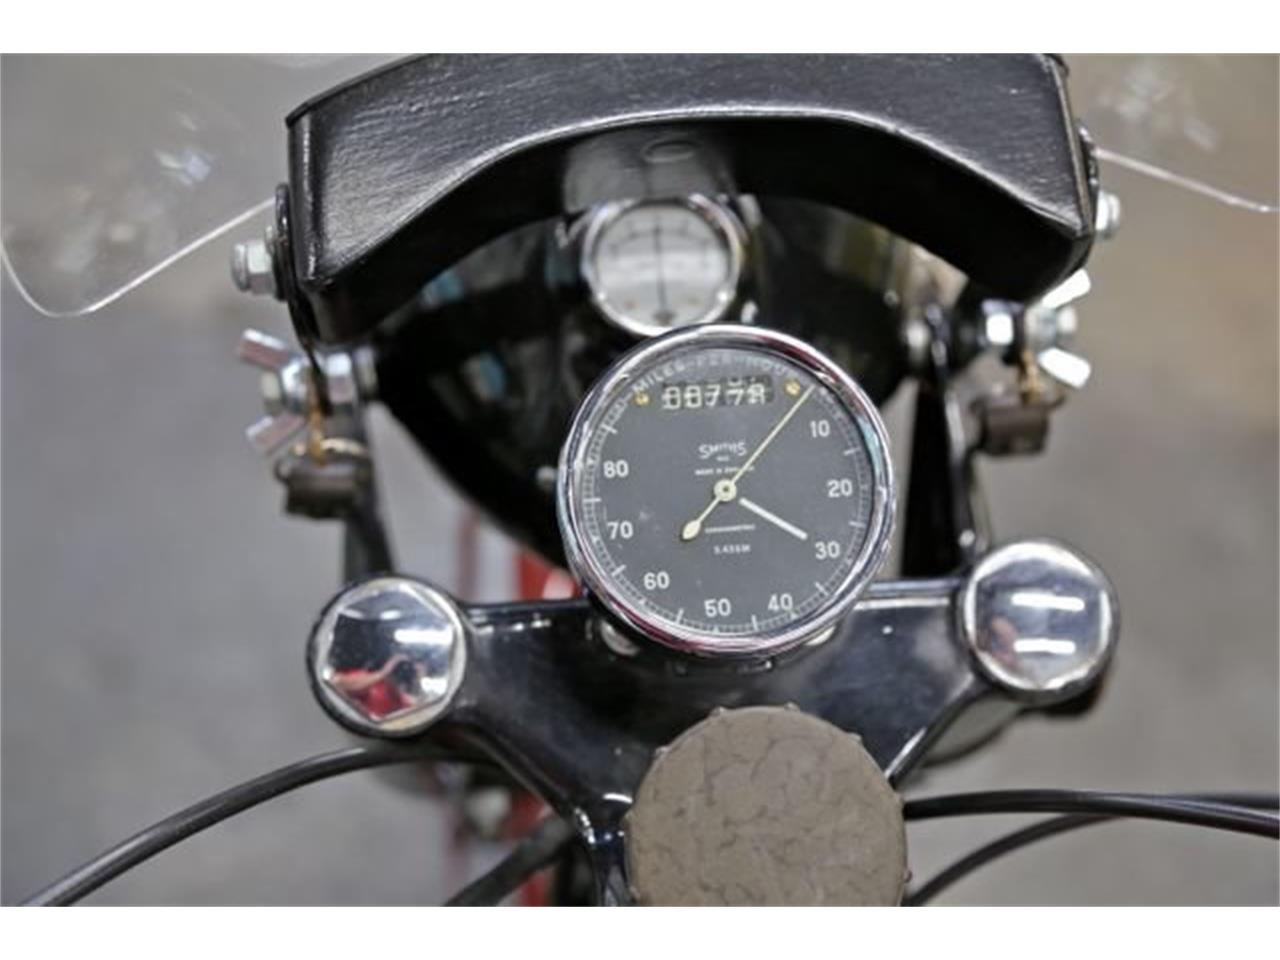 Large Picture of Classic 1950 BSA Motorcycle - $15,000.00 - NAM7